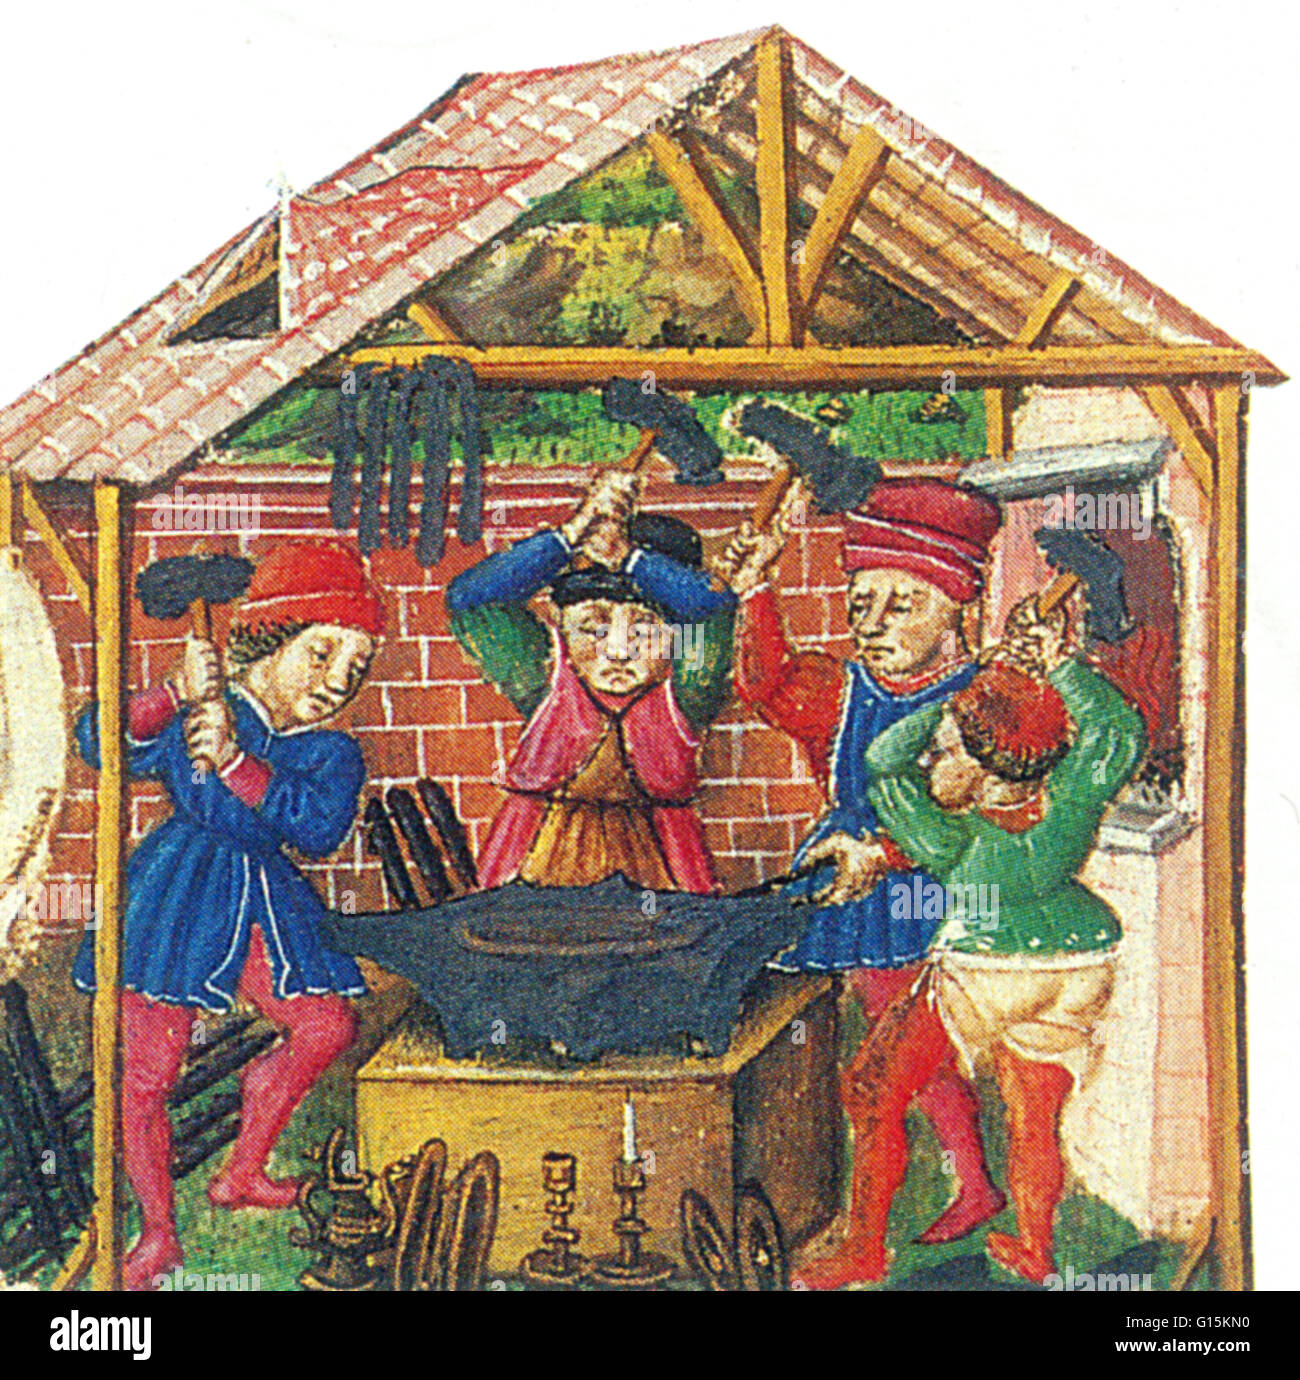 The smiths in this 15th century manuscript are hammering metal into shape over a solid iron anvil, their tools hanging - Stock Image